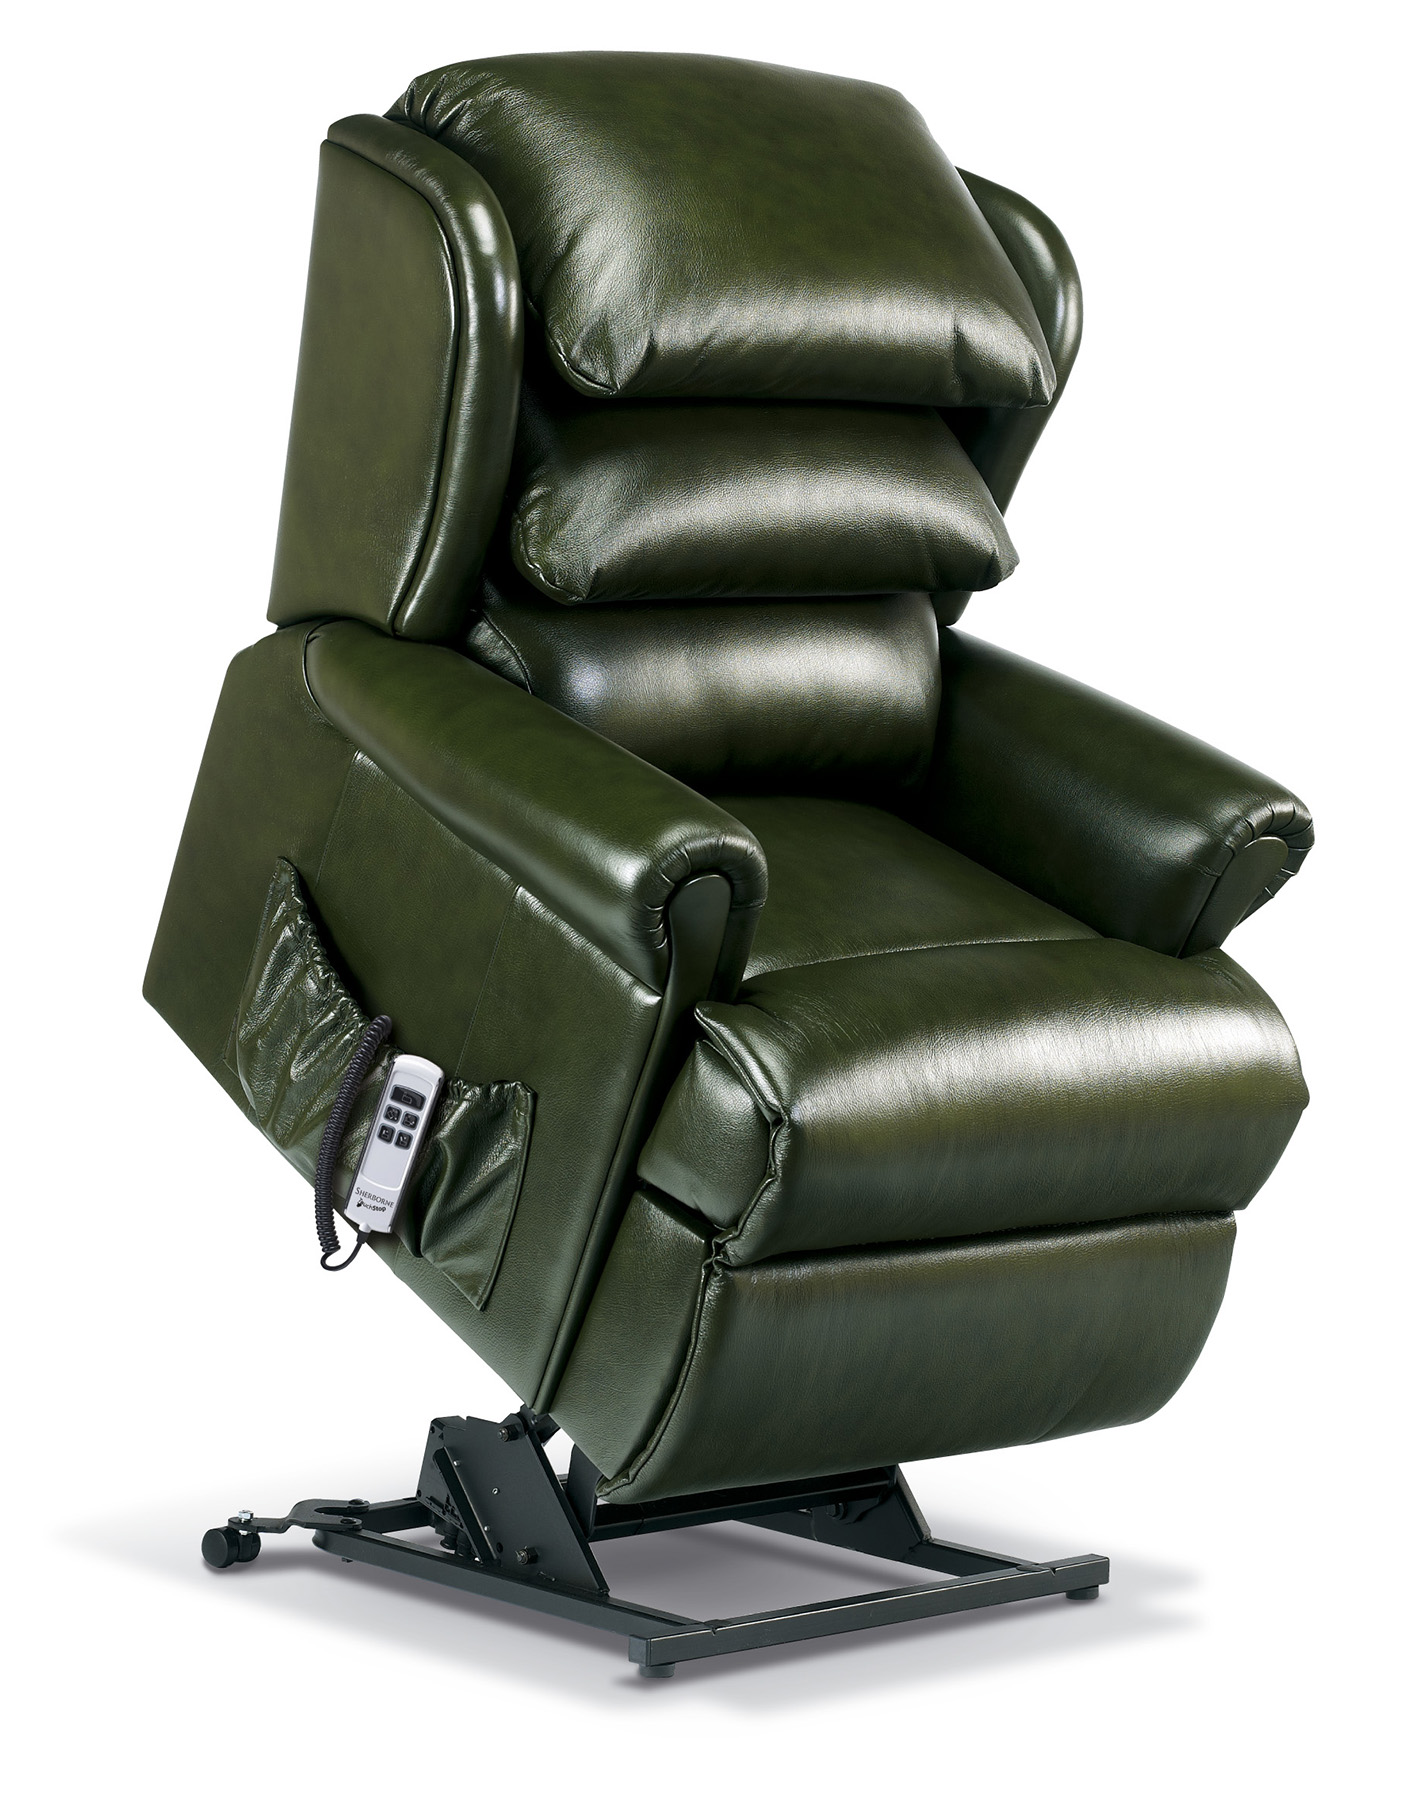 small lift chairs recliners leather wingback for sale windsor electric riser recliner sherborne